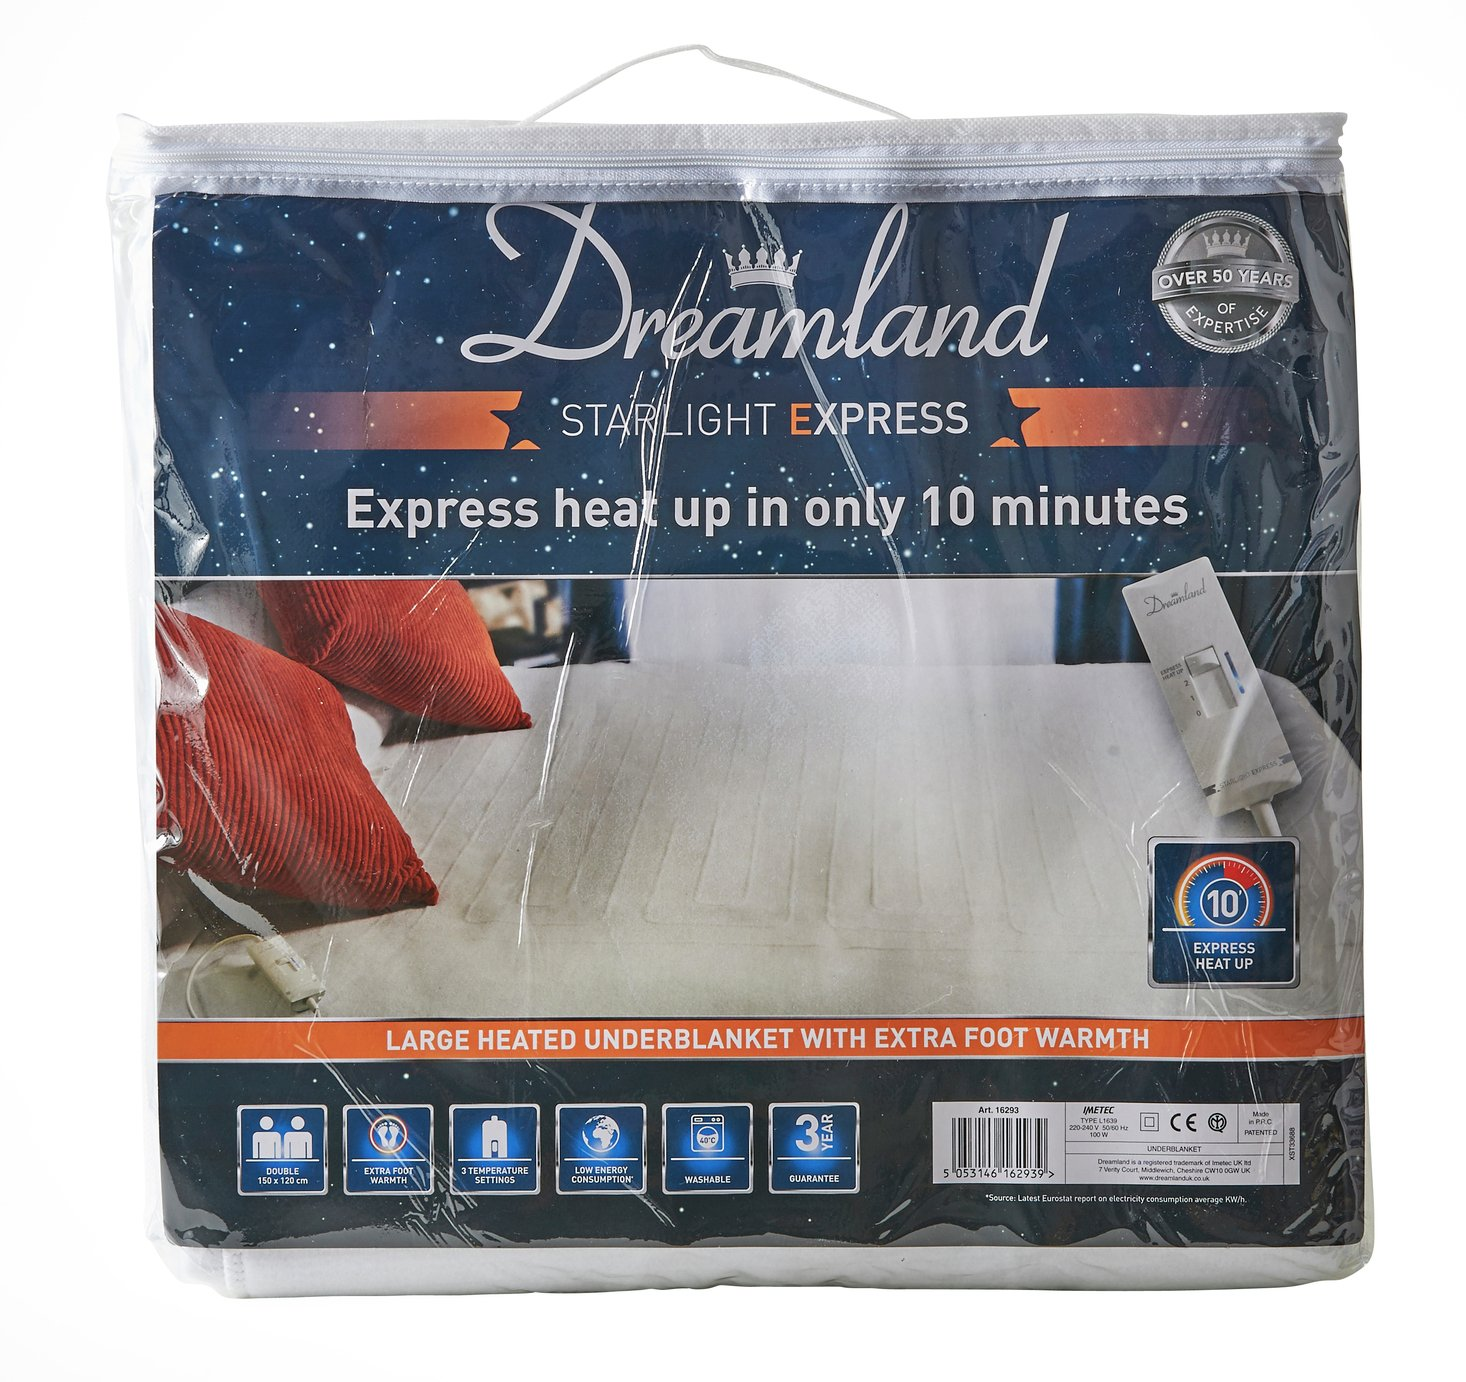 Dreamland Starlight Express Heated Underblanket review